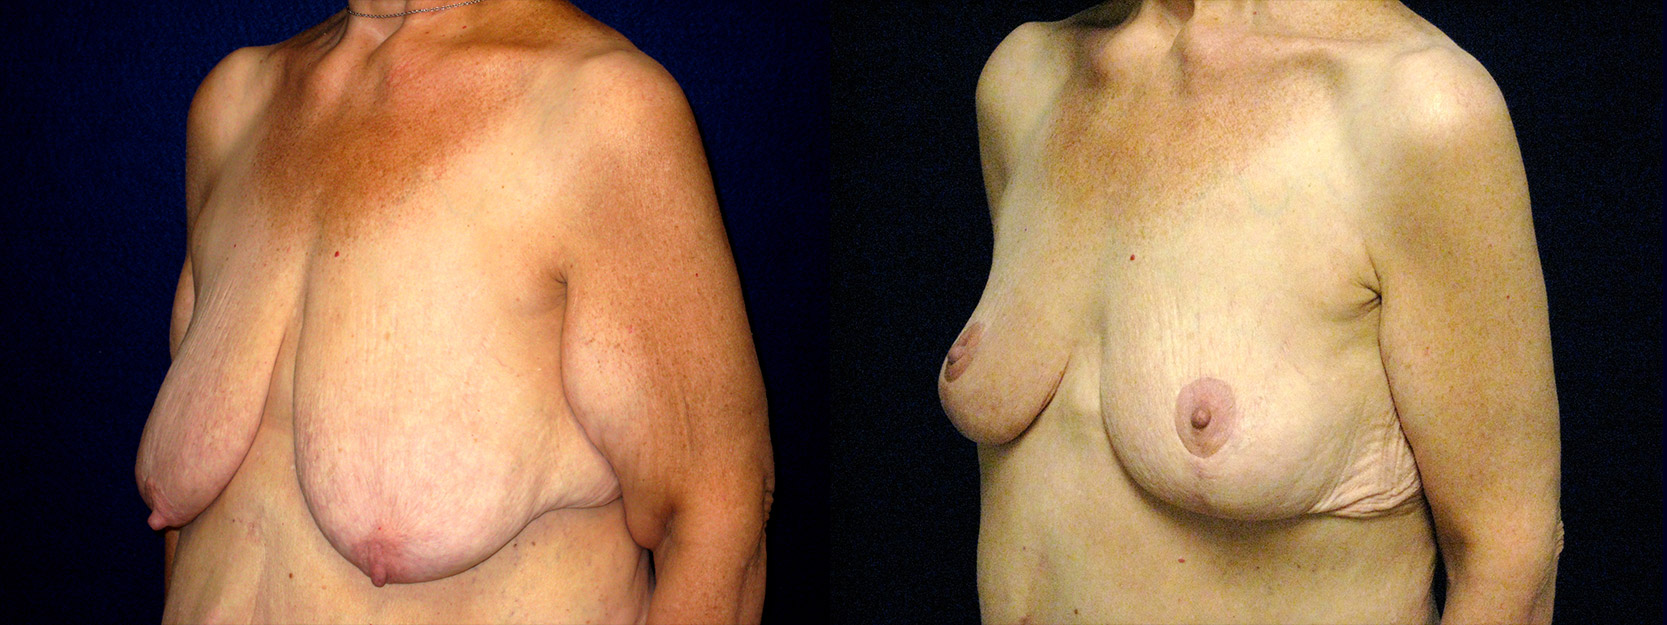 Left 3/4 View - Breast Reduction Mastopexy and Arm Lift After Massive Weight Loss